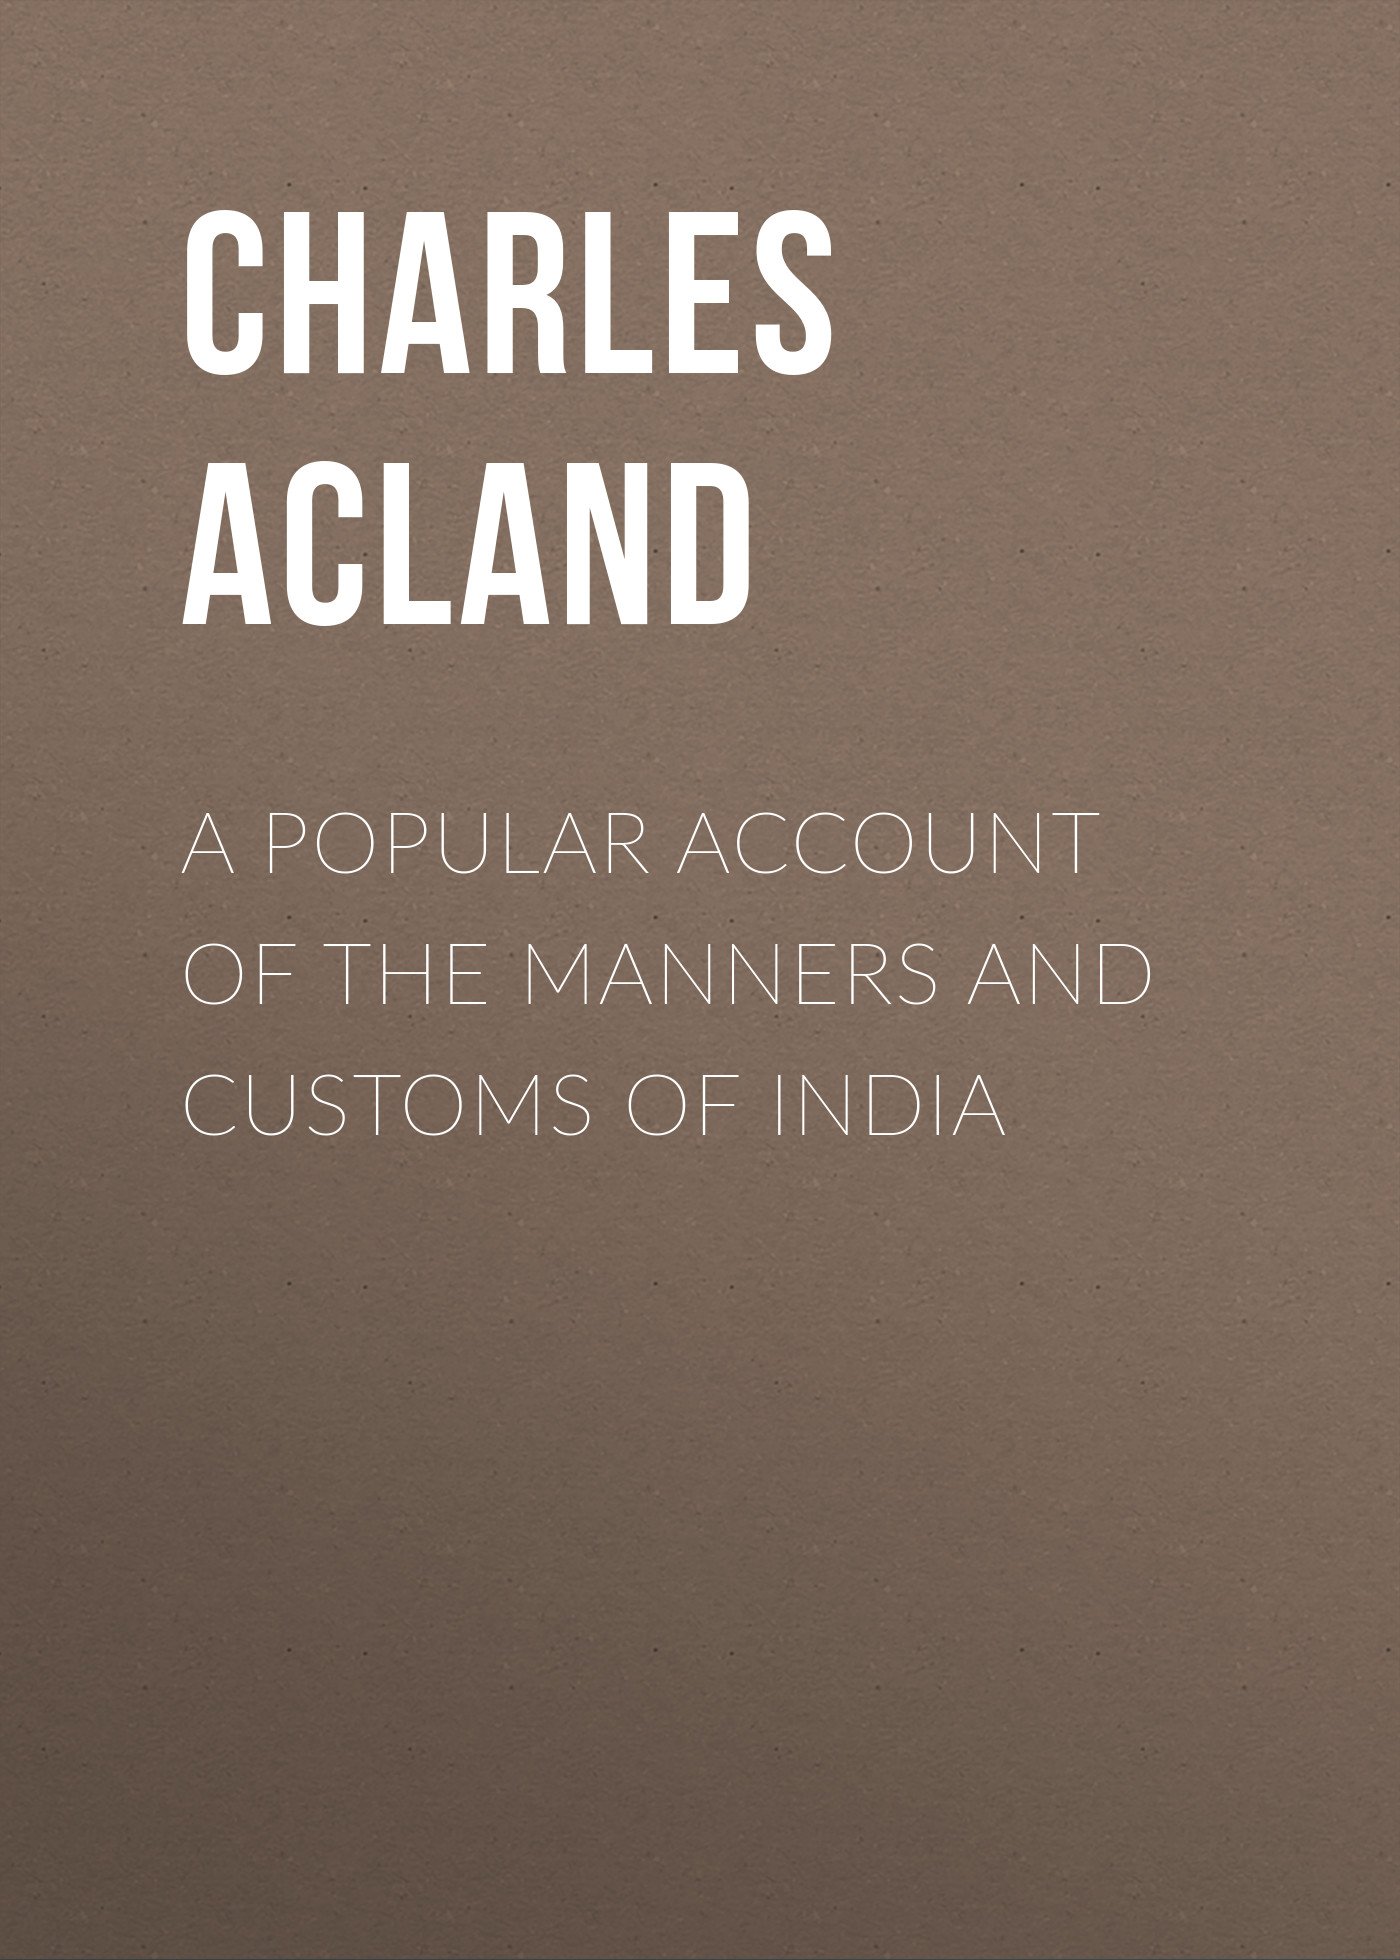 Acland Charles A Popular Account of the Manners and Customs of India india hicks a slice of england